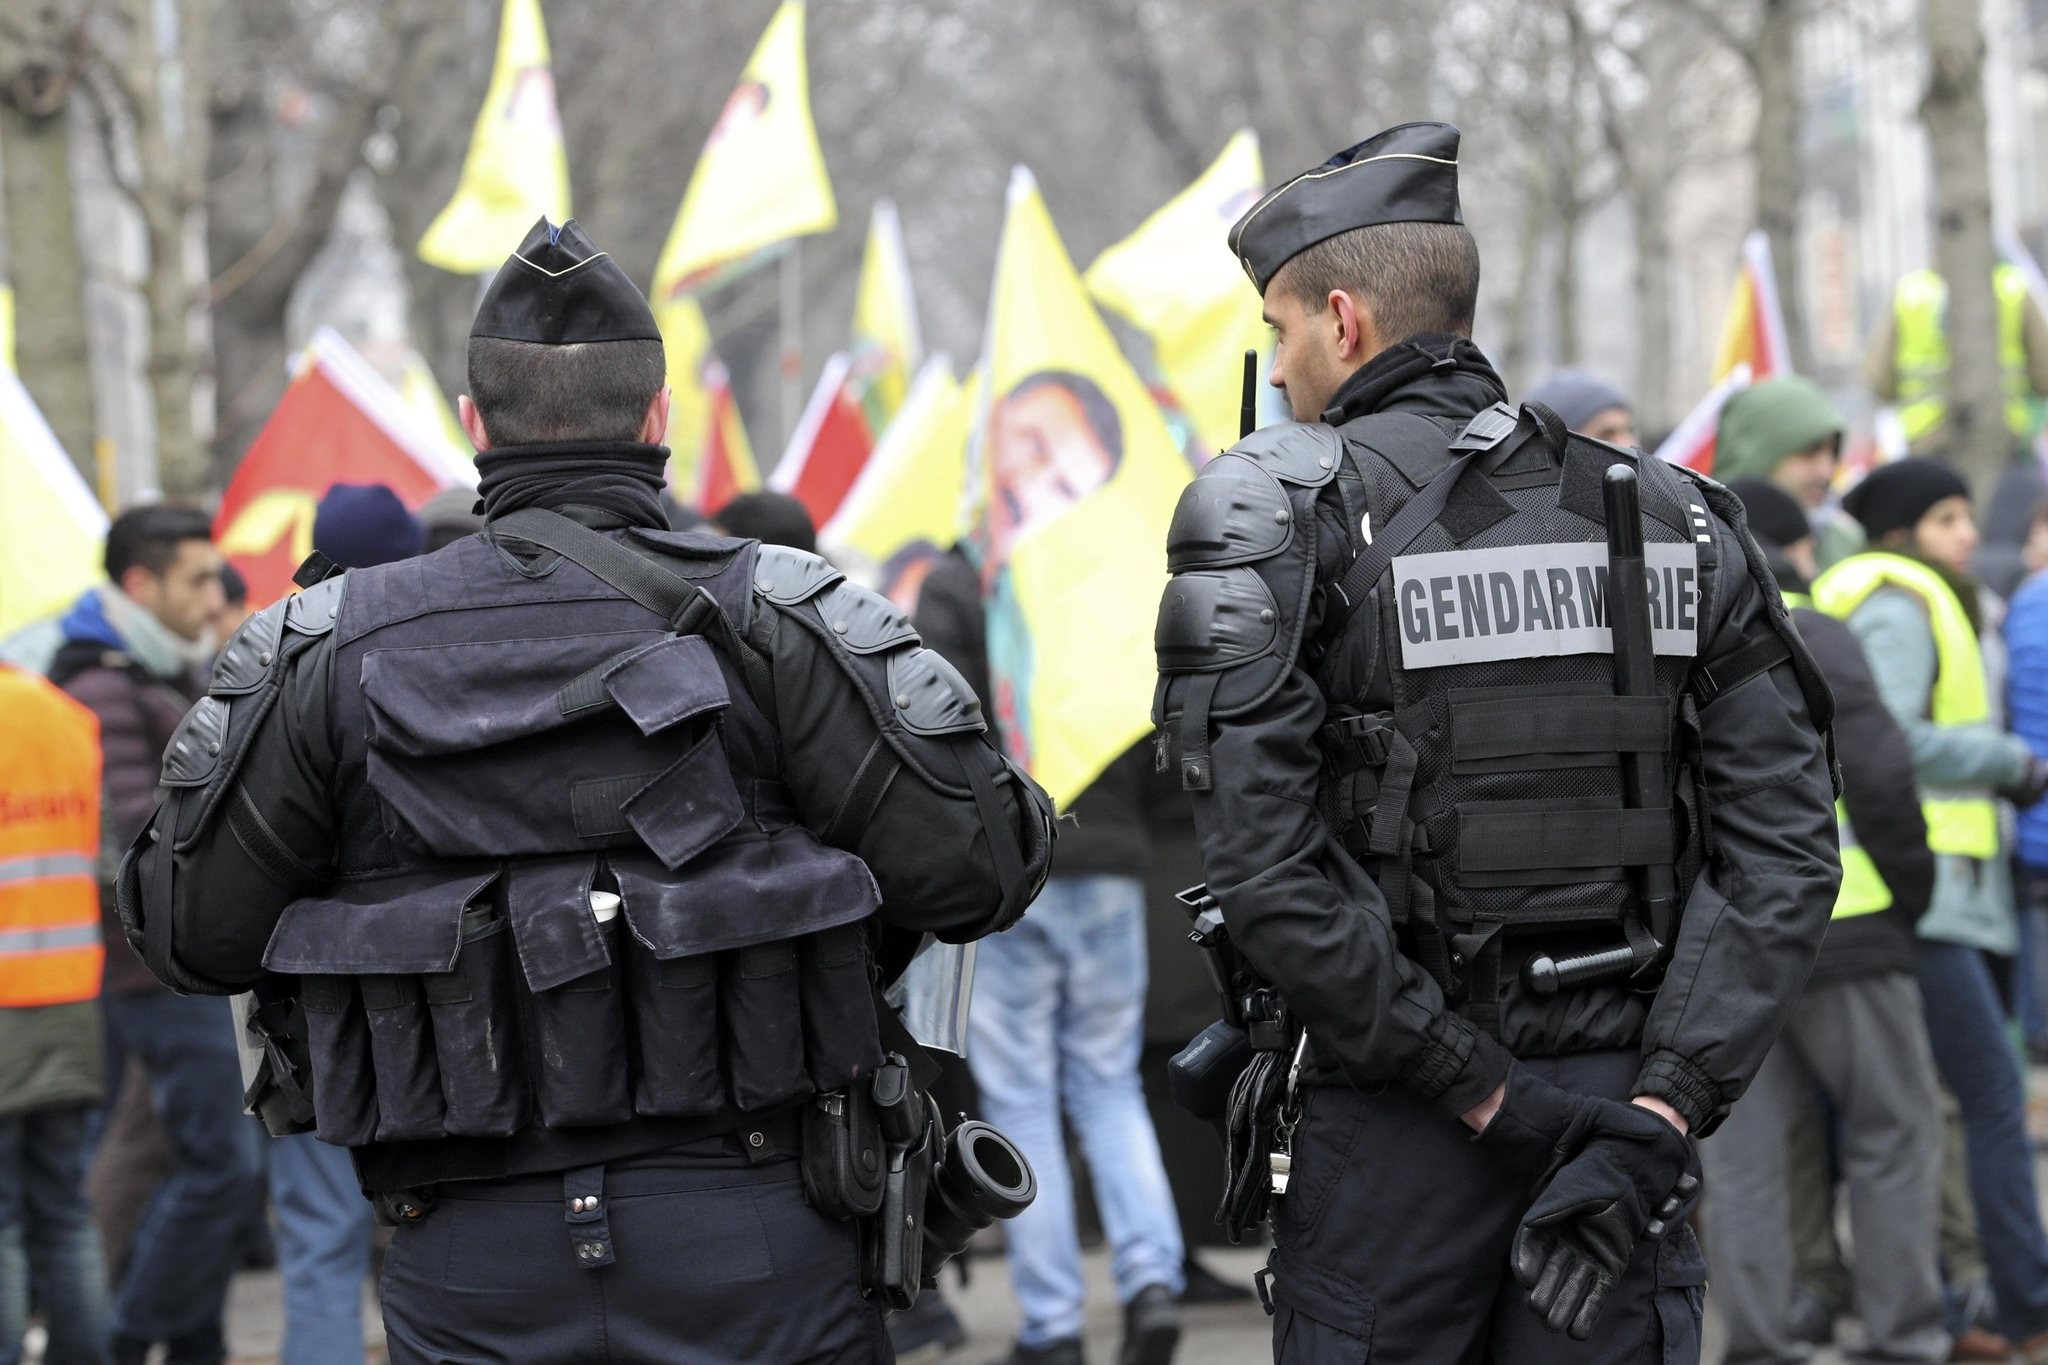 French gendarmes stand guard during a demonstration in support of the jailed leader of the PKK terror group u00d6calan in Strasbourg, France, February 11, 2017.  (REUTERS Photo)